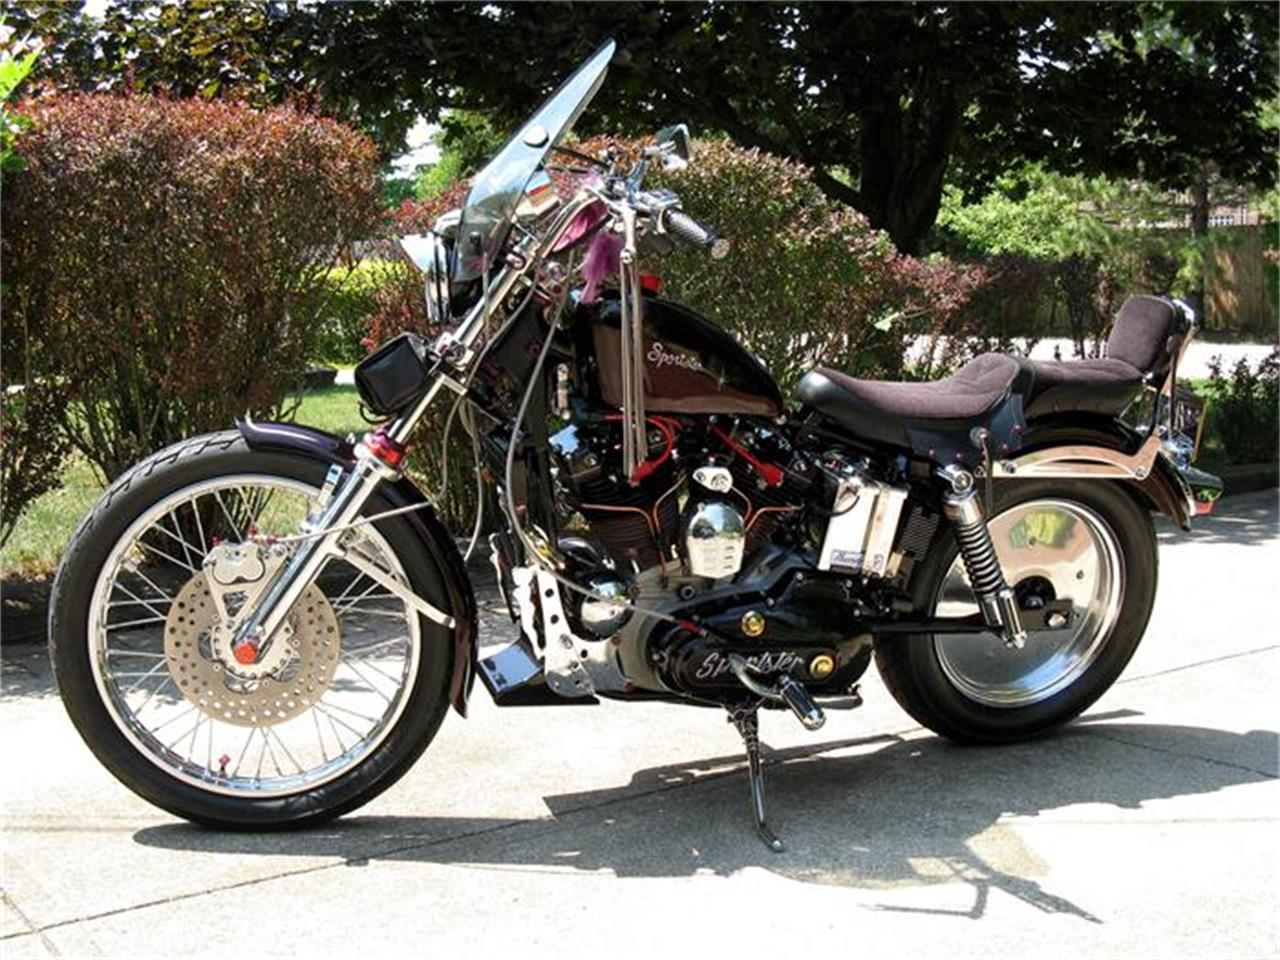 Large Picture of '74 Harley-Davidson Sportster located in Ohio - $7,500.00 - 8KQI